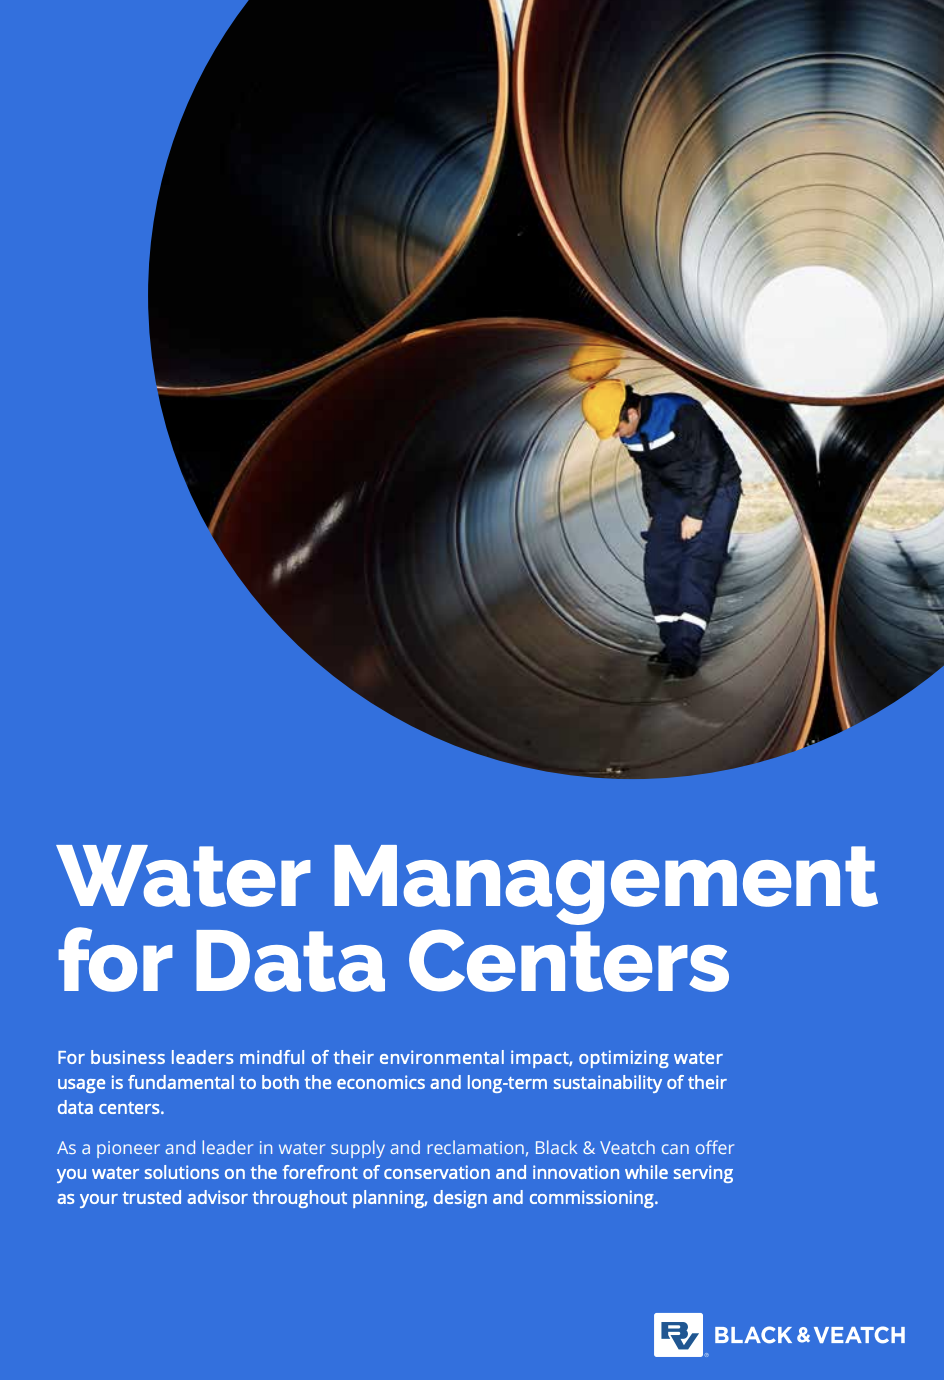 Water Management for Data Centers